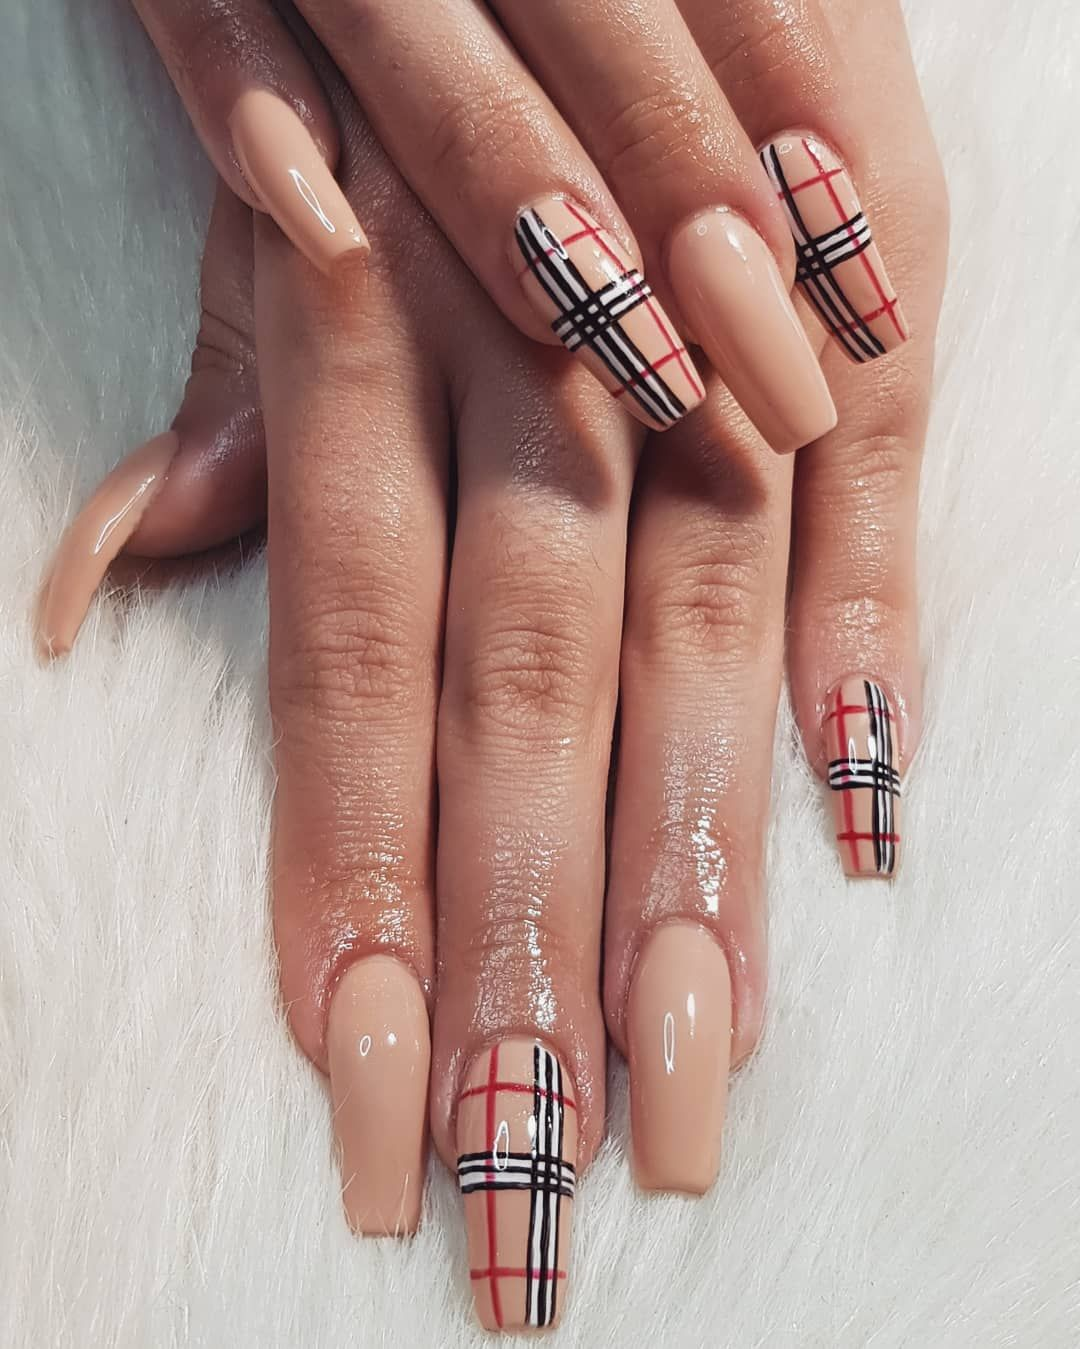 Cory Antunes Nail Artist On Instagram Burberry Feels Handpaintednailart Nails Nailart Nailde Burberry Nails Coffin Nails Designs Best Acrylic Nails